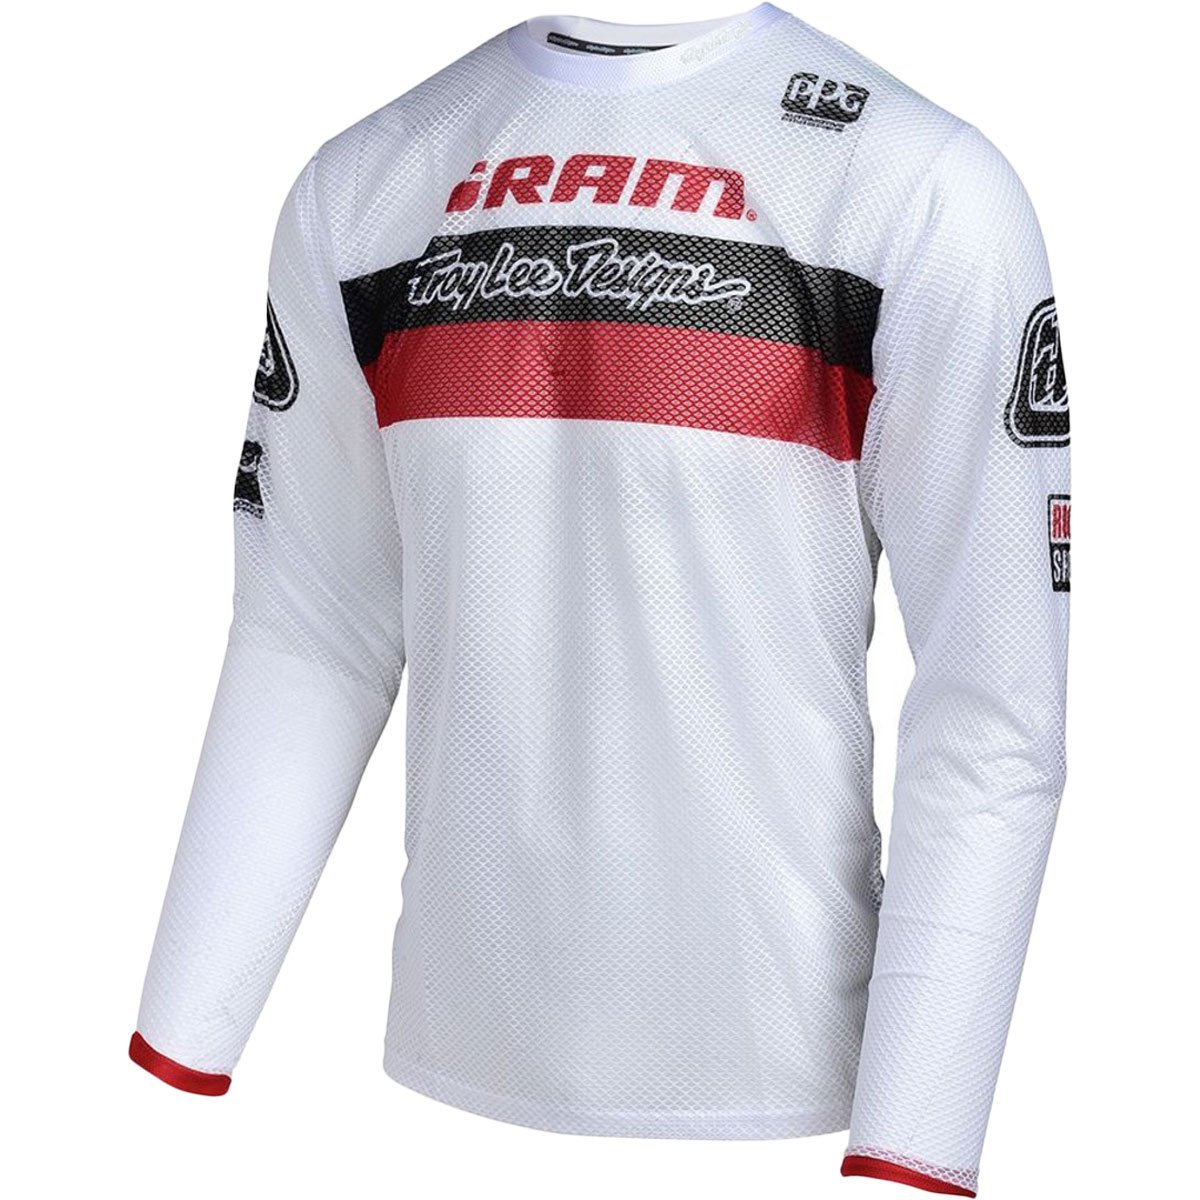 Troy Lee Designs Sprint Air Sram TLD Racing Boy's BMX Racing Jersey - White / Small